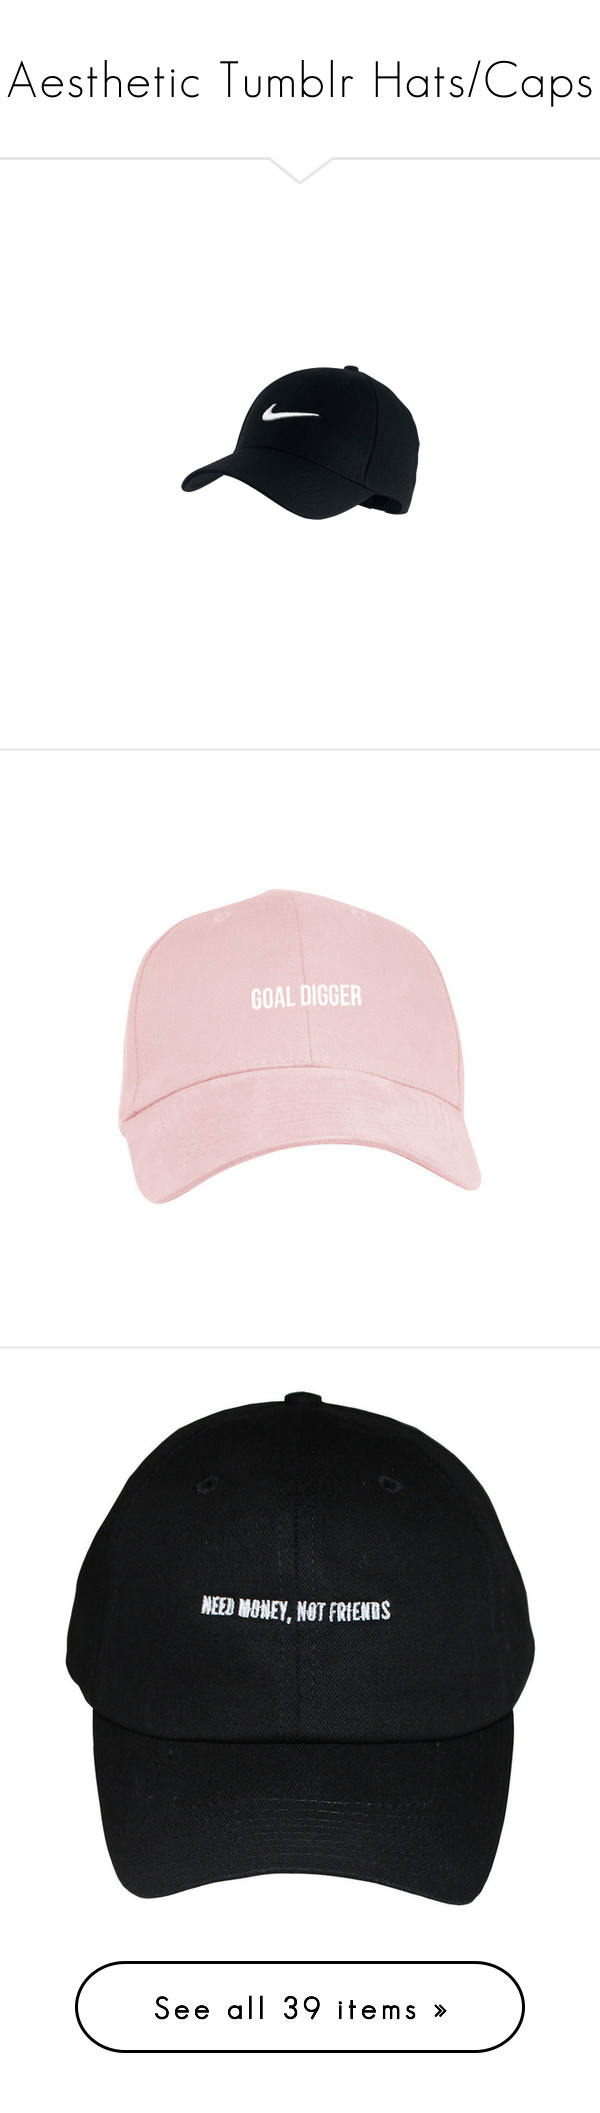 Aesthetic Tumblr Hats Caps Outfits With Hats Trendy Hat Hat Hairstyles